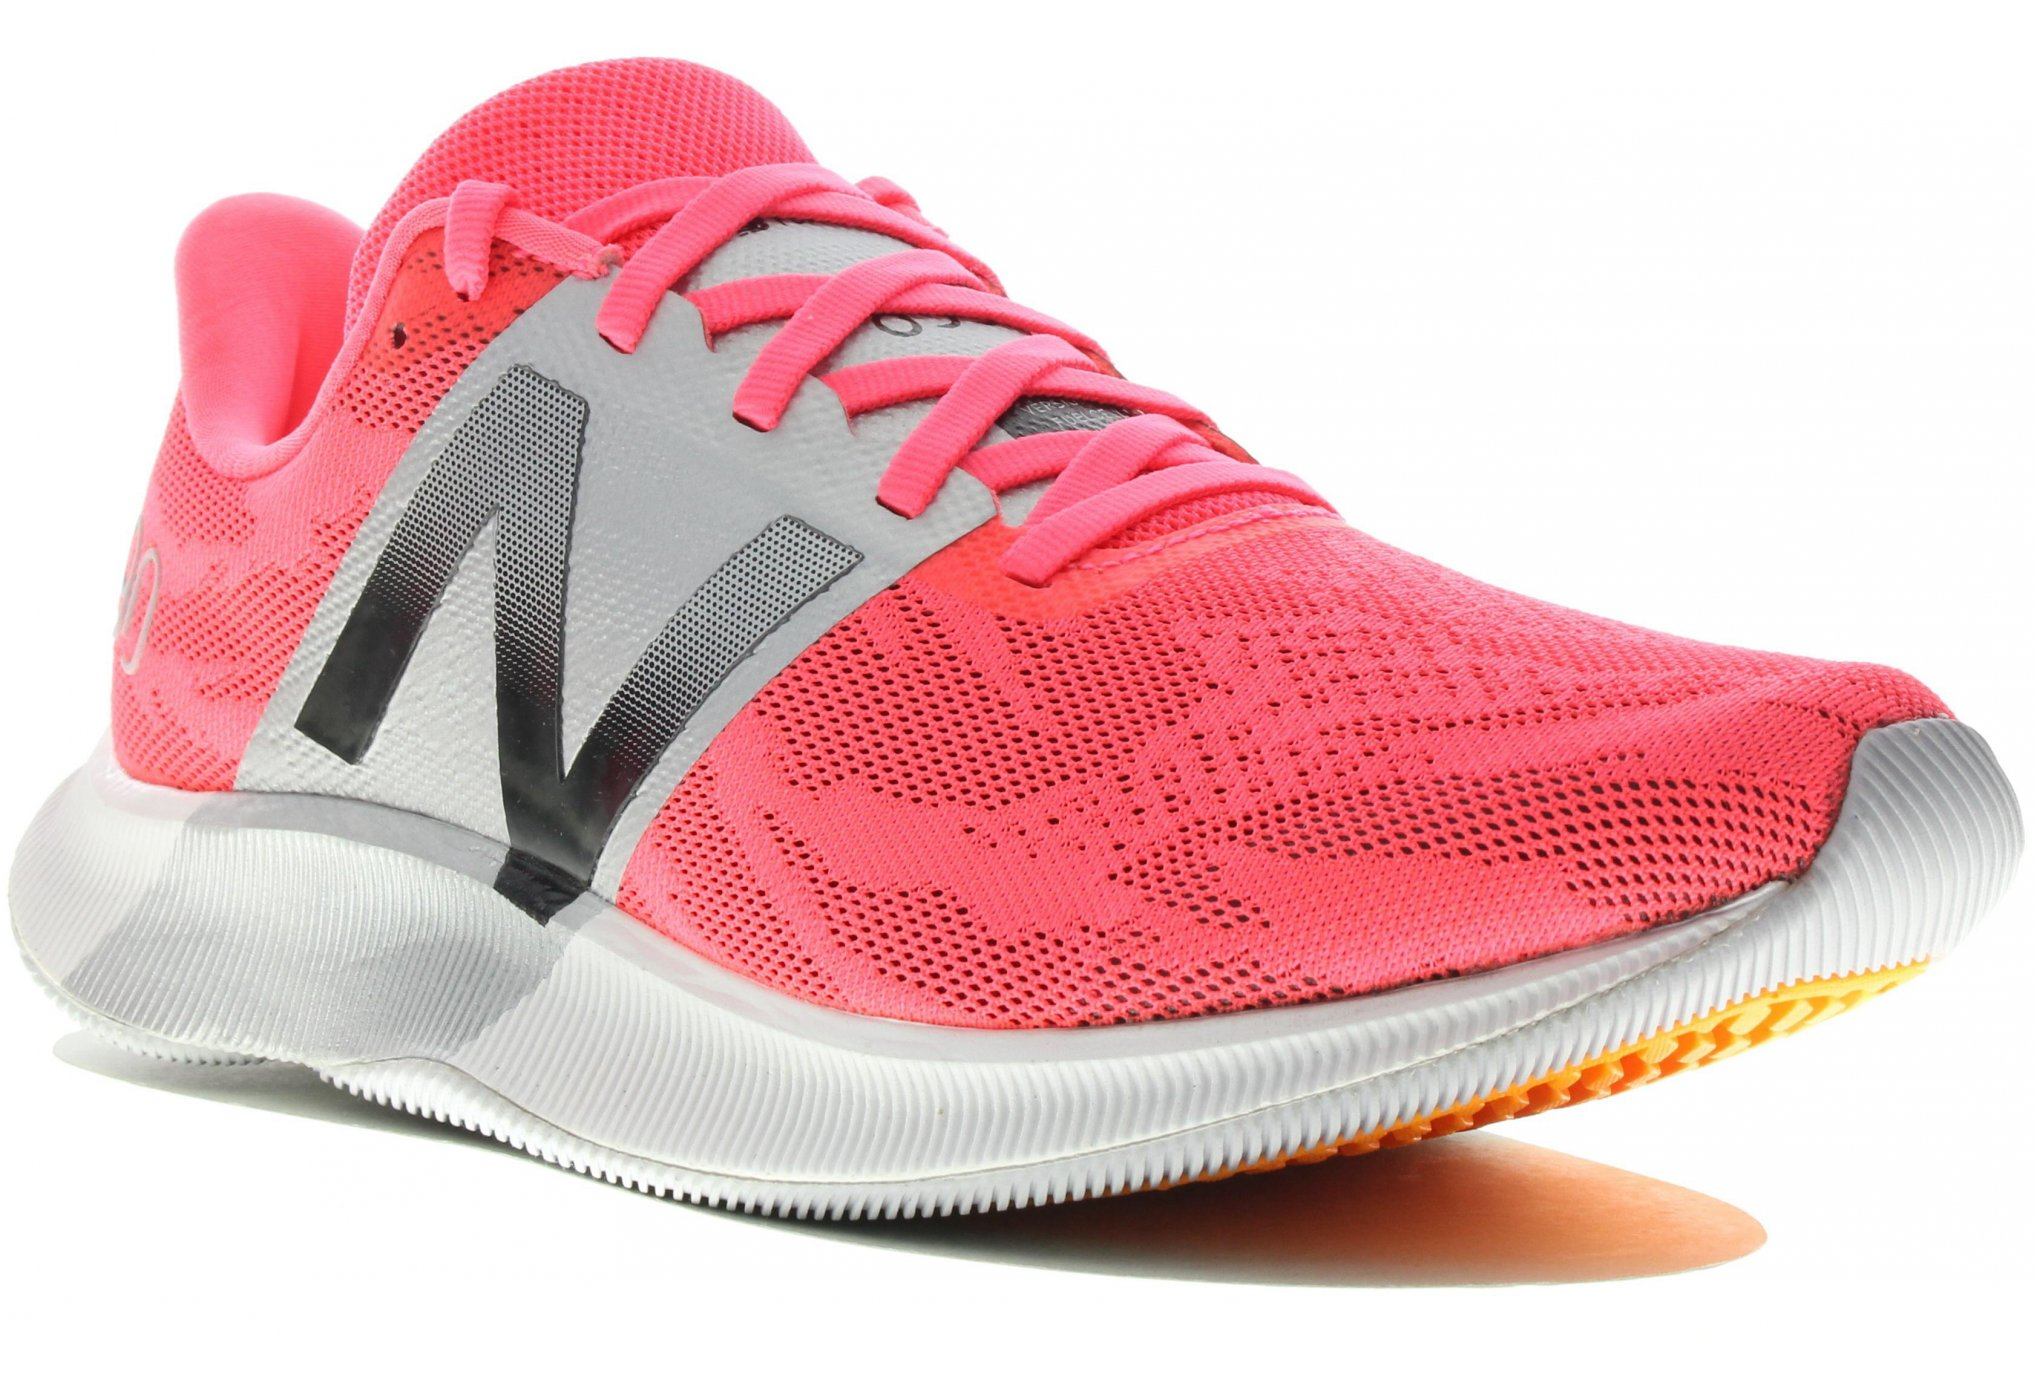 New Balance FuelCell 890 V8 - B Chaussures running femme